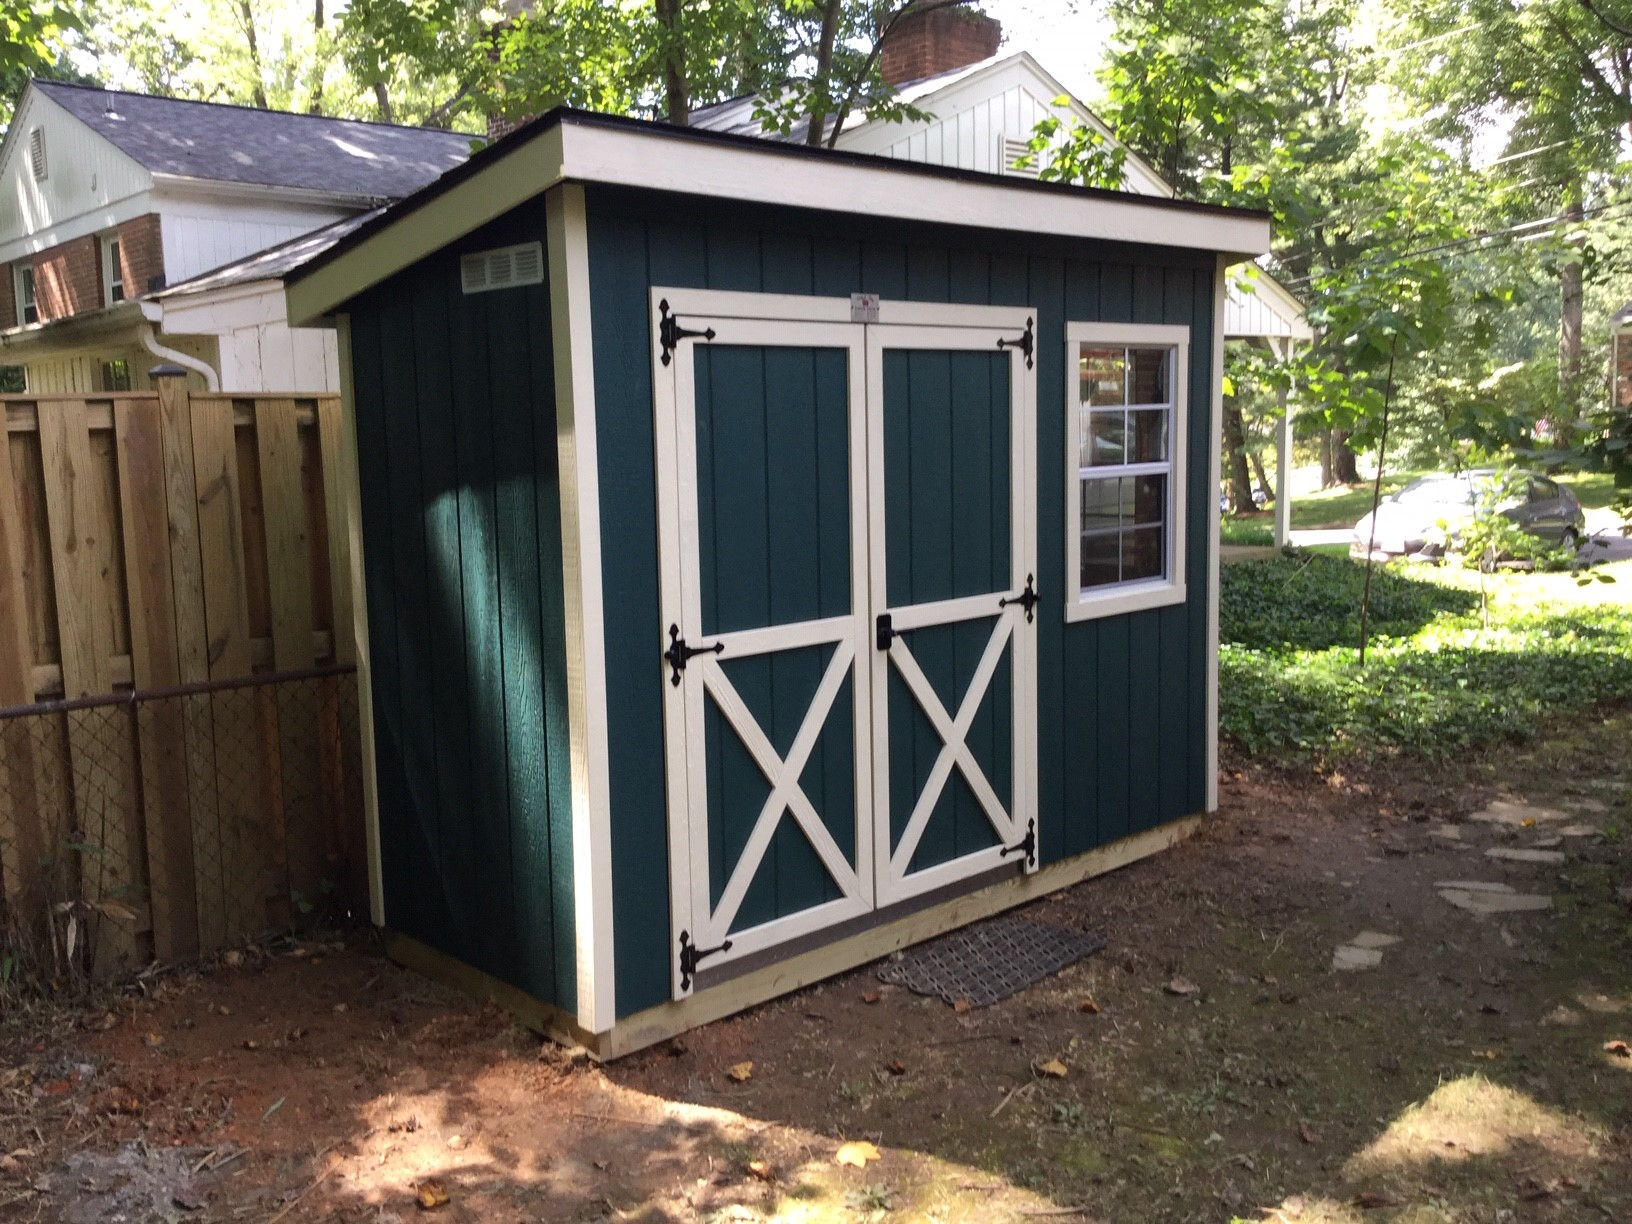 We are so pleased with our adorable, sturdy and useful new garden shed! The staff at This n' That made the process easy and pleasant—thanks!